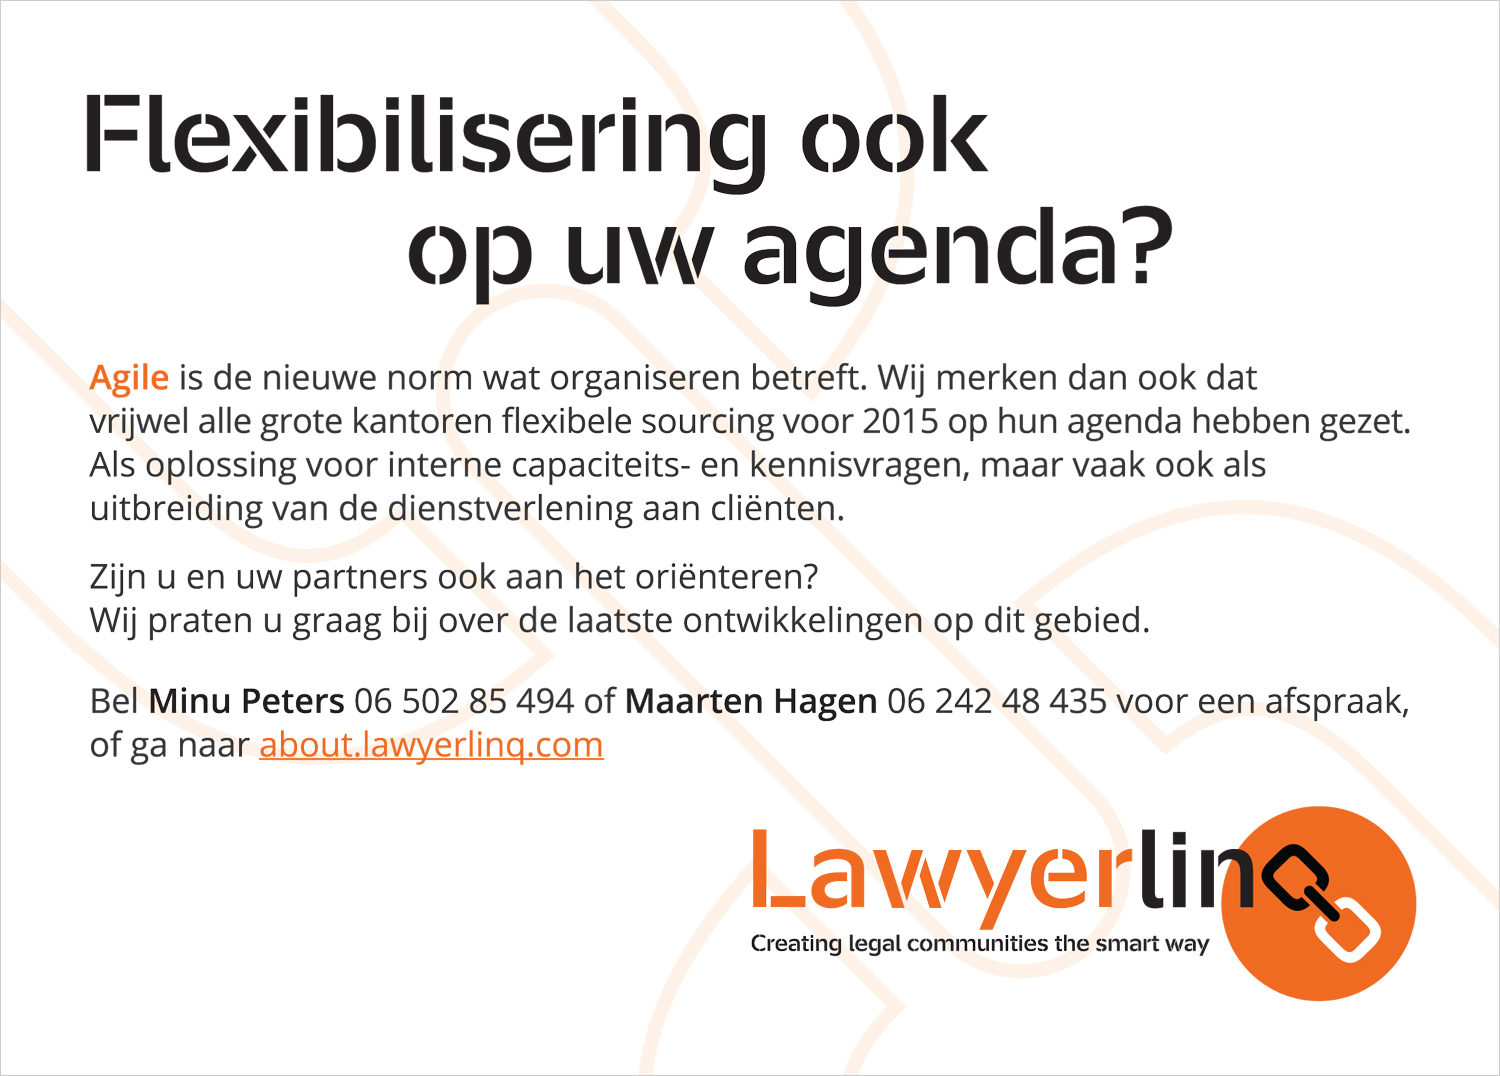 advertentie-2.jpg